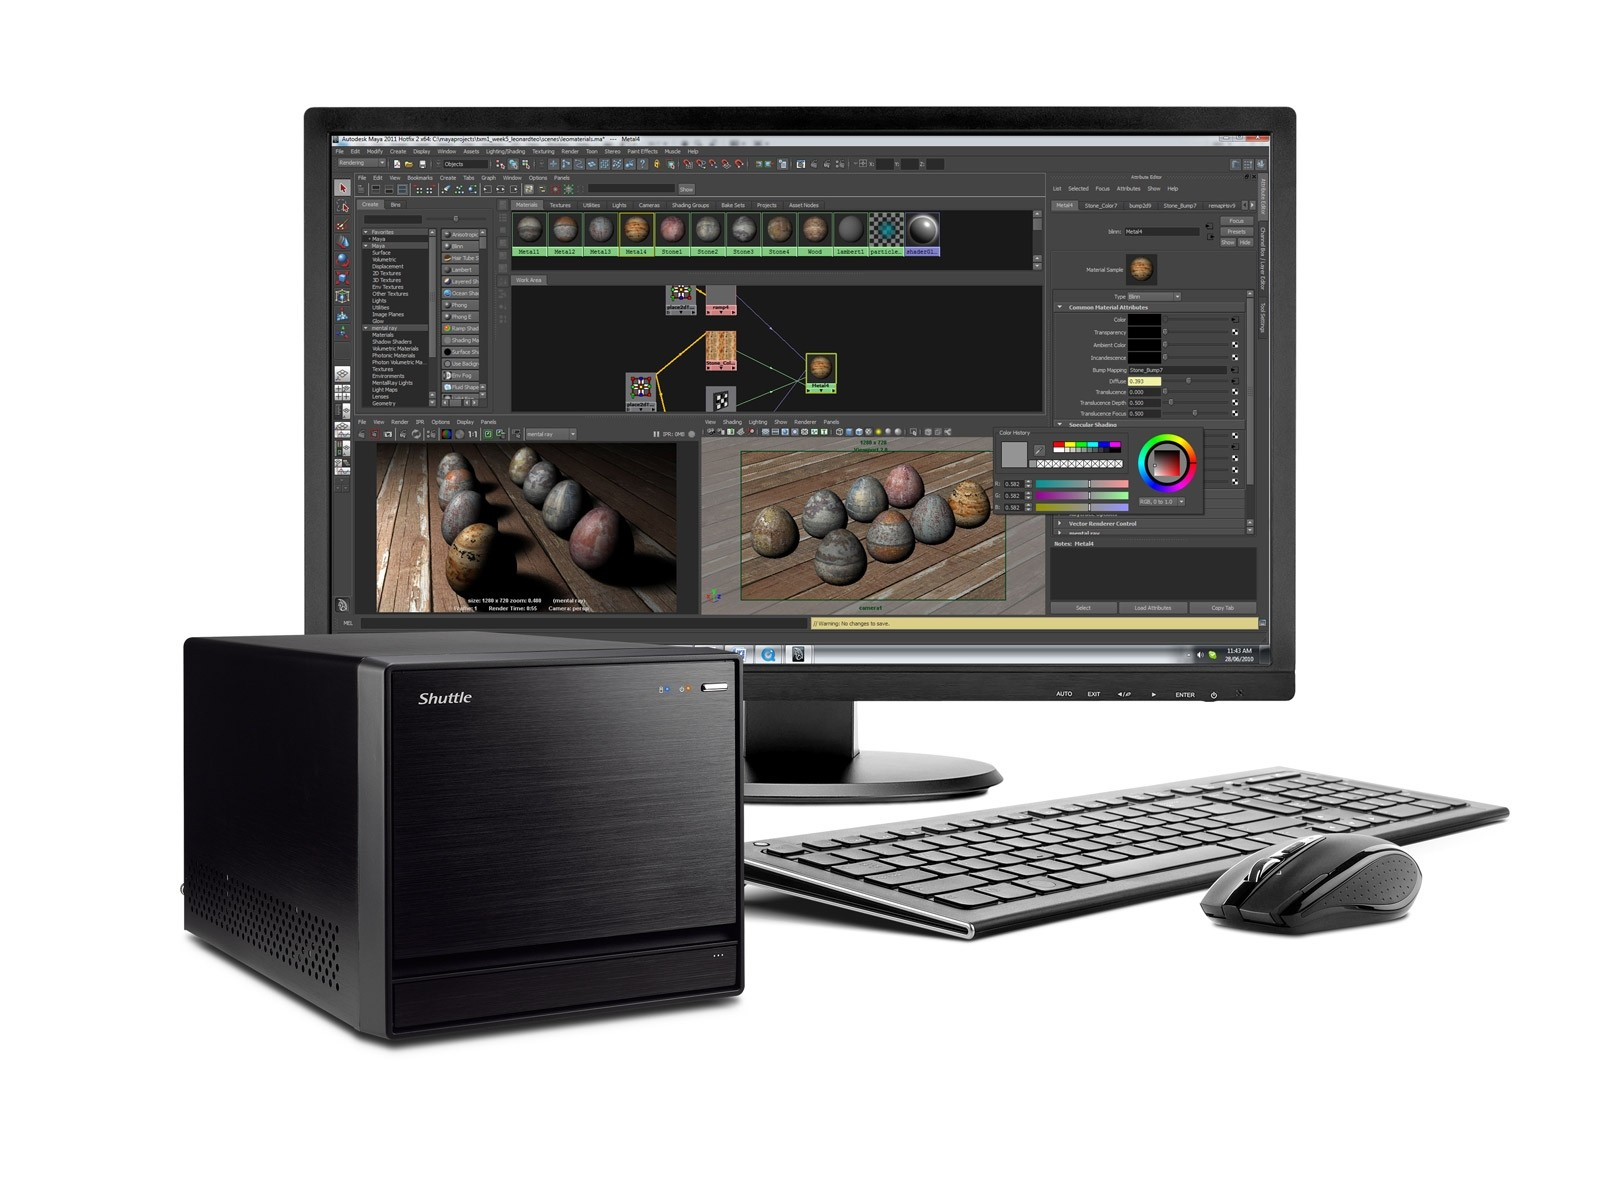 Shuttle XPC R8 2710S - 3D Workstation